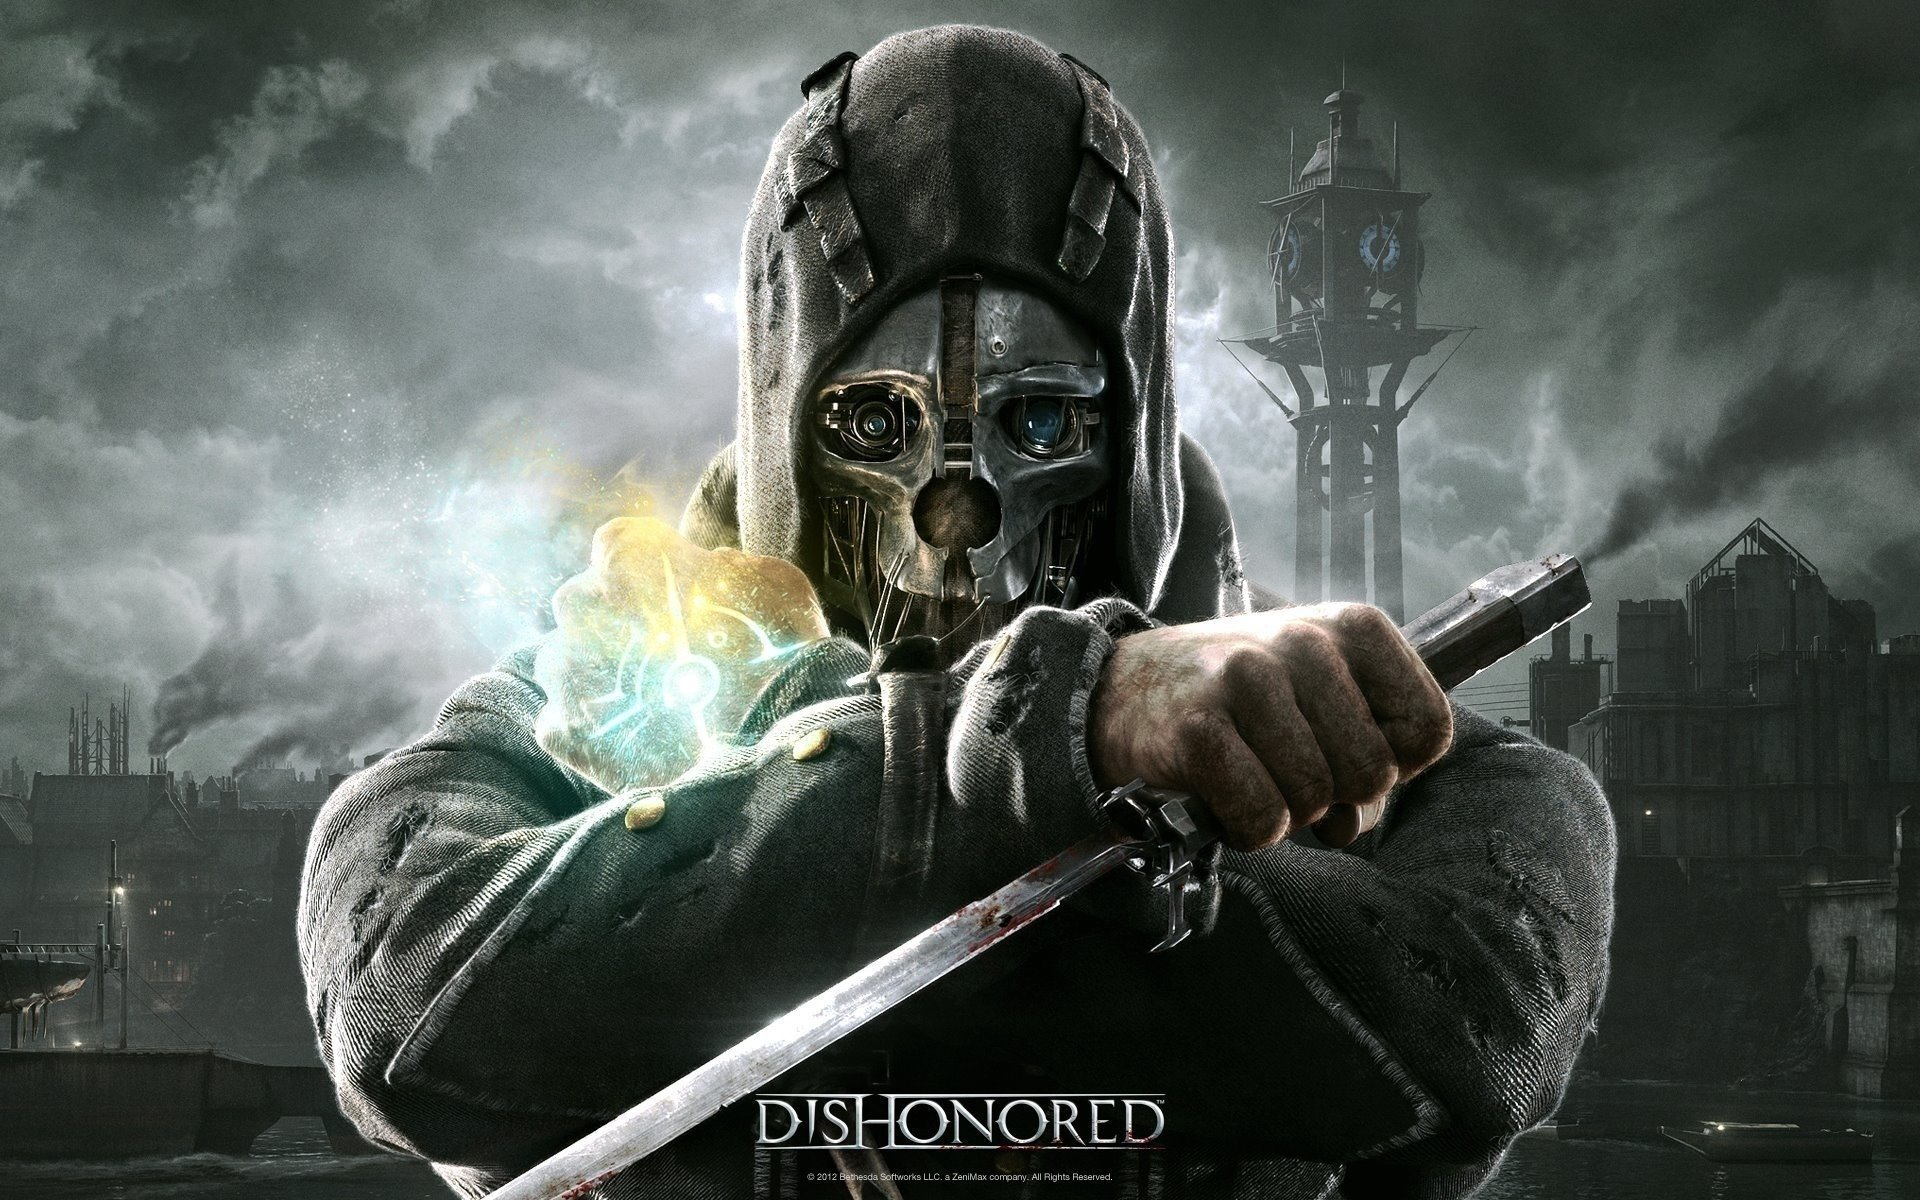 Wallpaper Iphone Galaxy Dishonored Hd Wallpaper Background Image 1920x1200